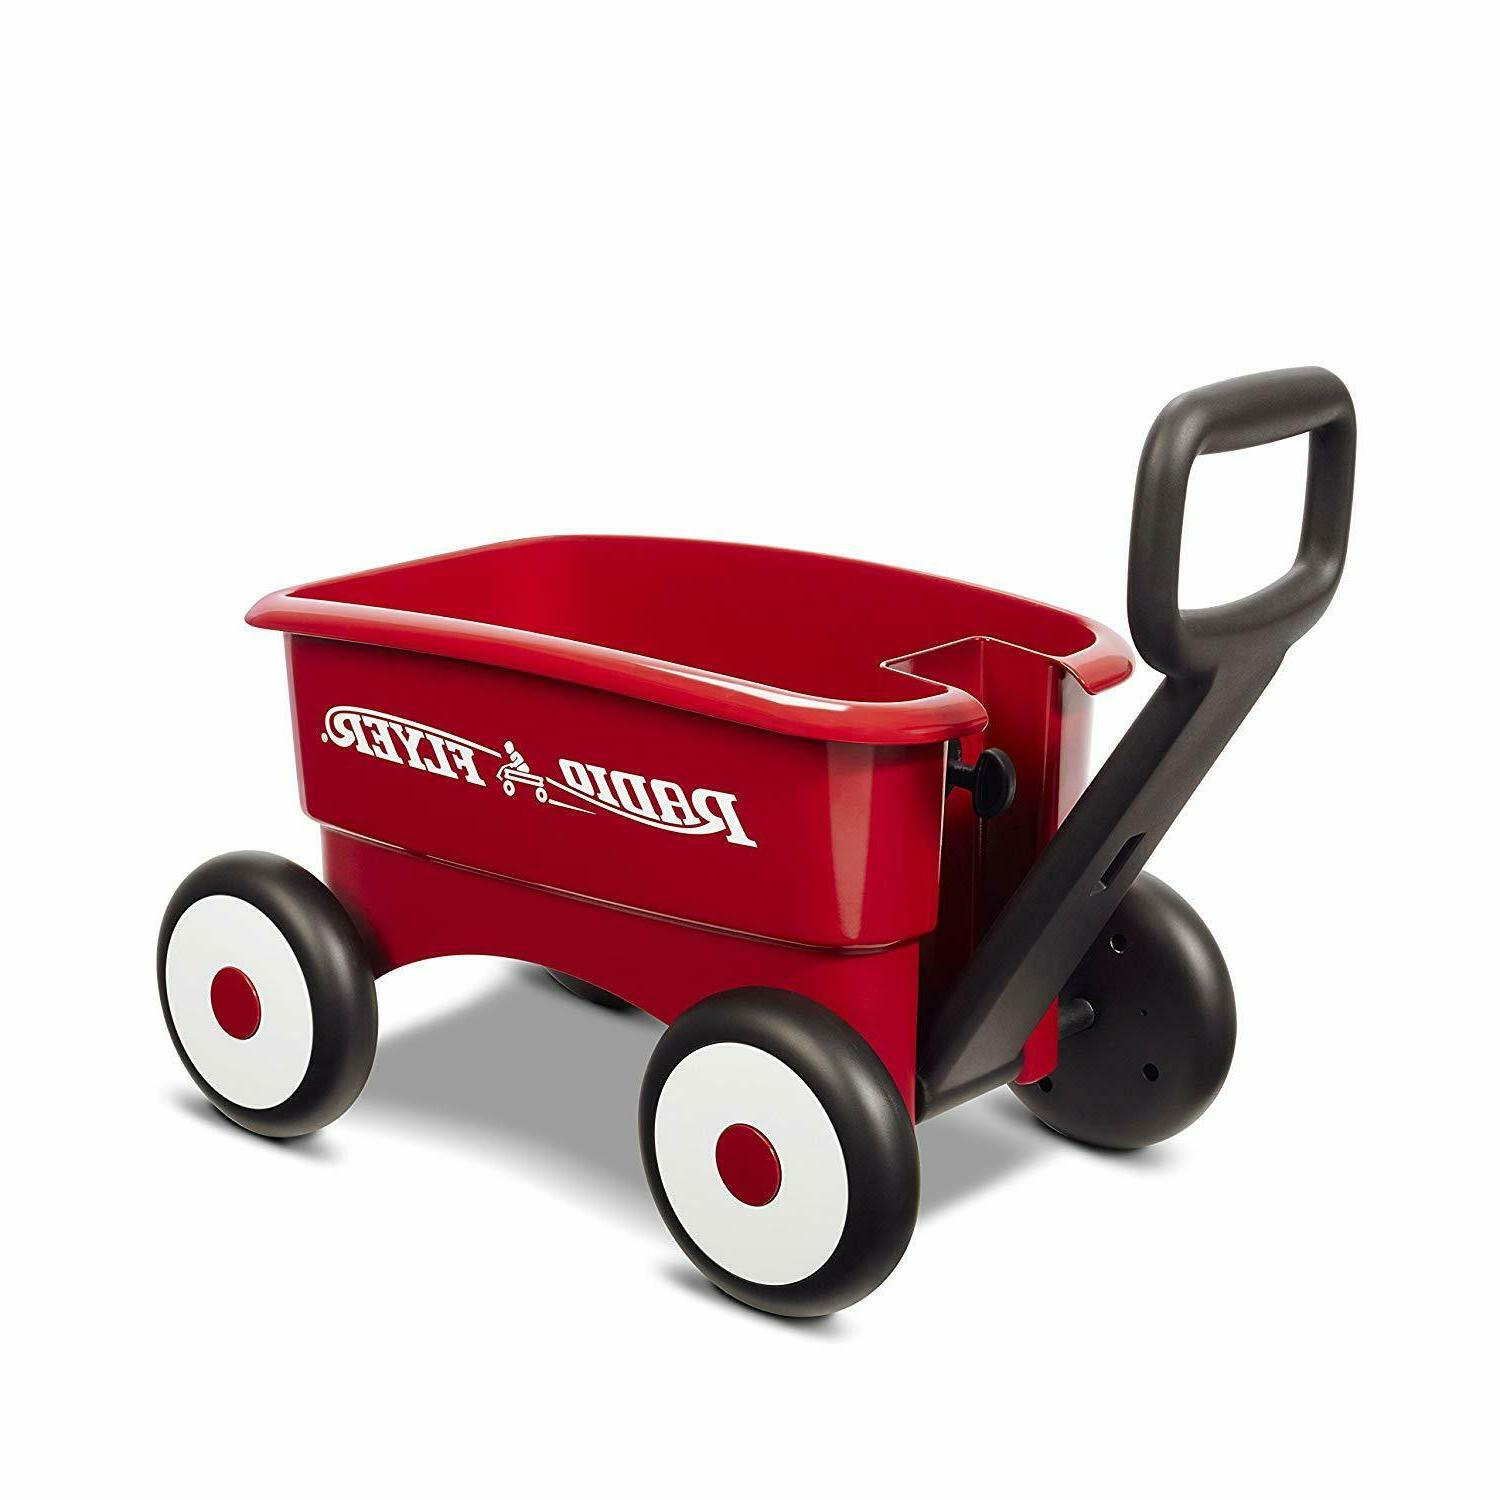 Radio 1st 2-in-1 Wagon, Red